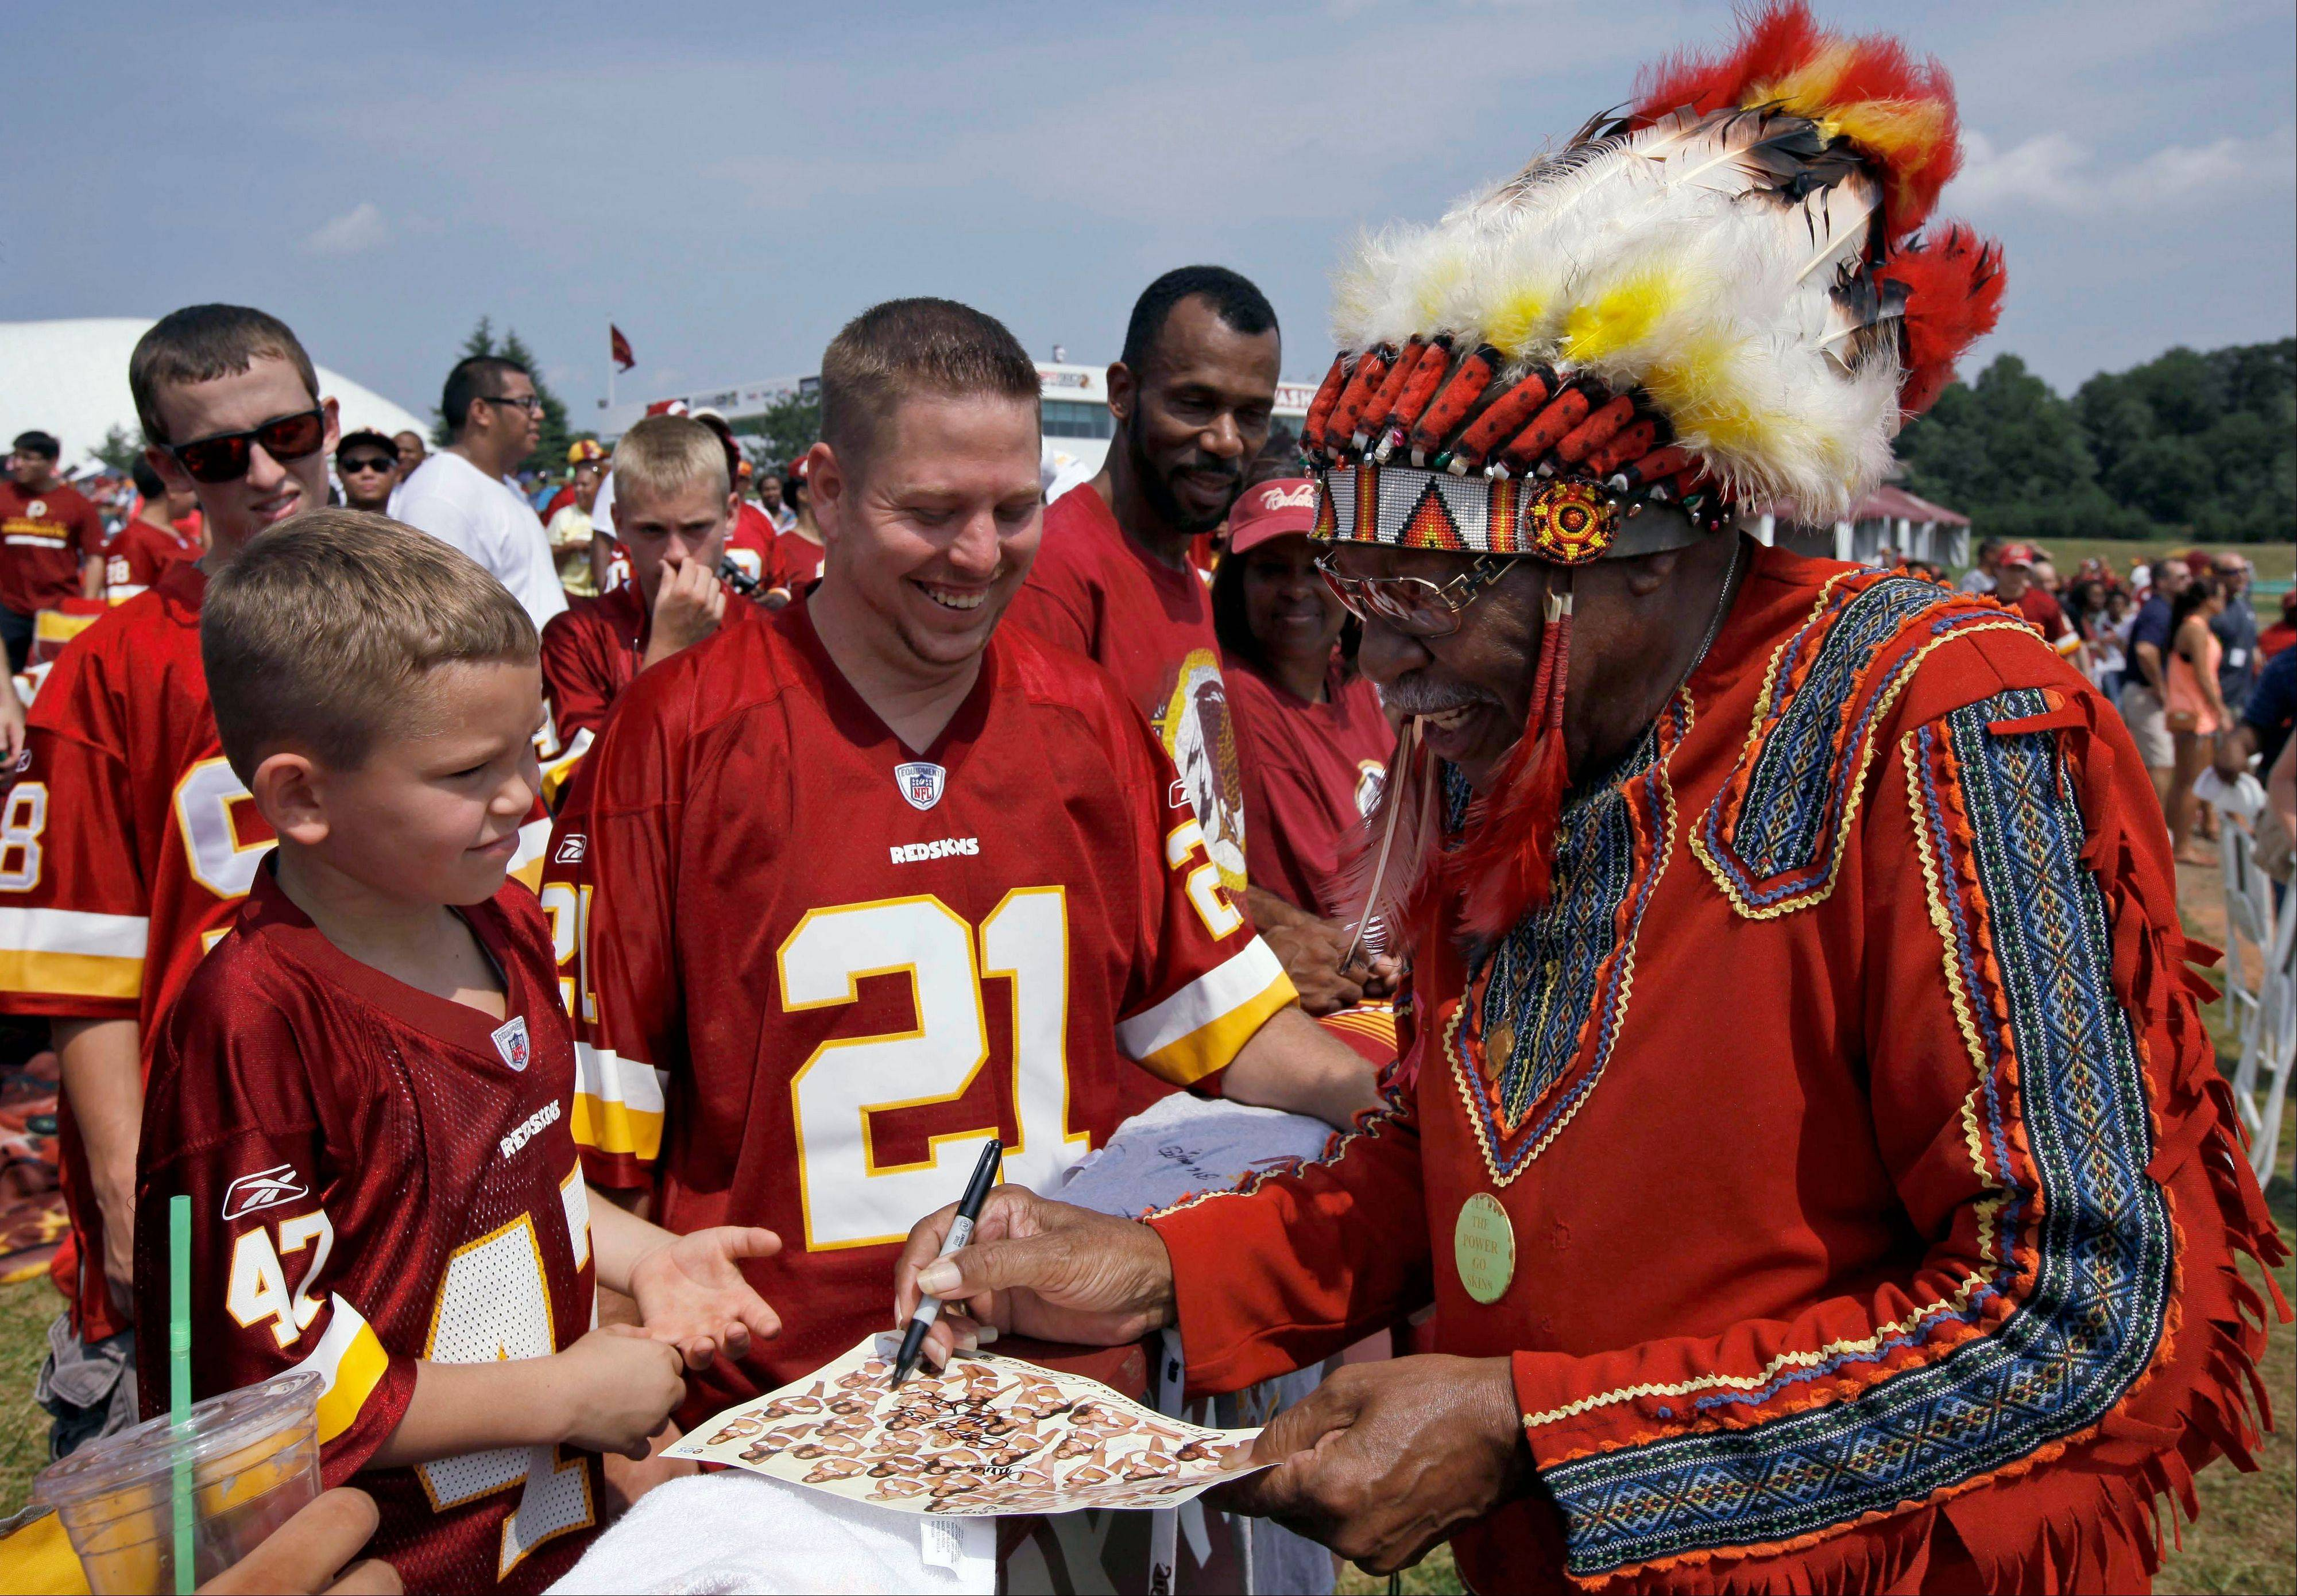 "Zena ""Chief Z"" Williams, unofficial mascot of the Washington Redskins, signs autographs during fan appreciation day at the Redskins' NFL football training camp in 2012."